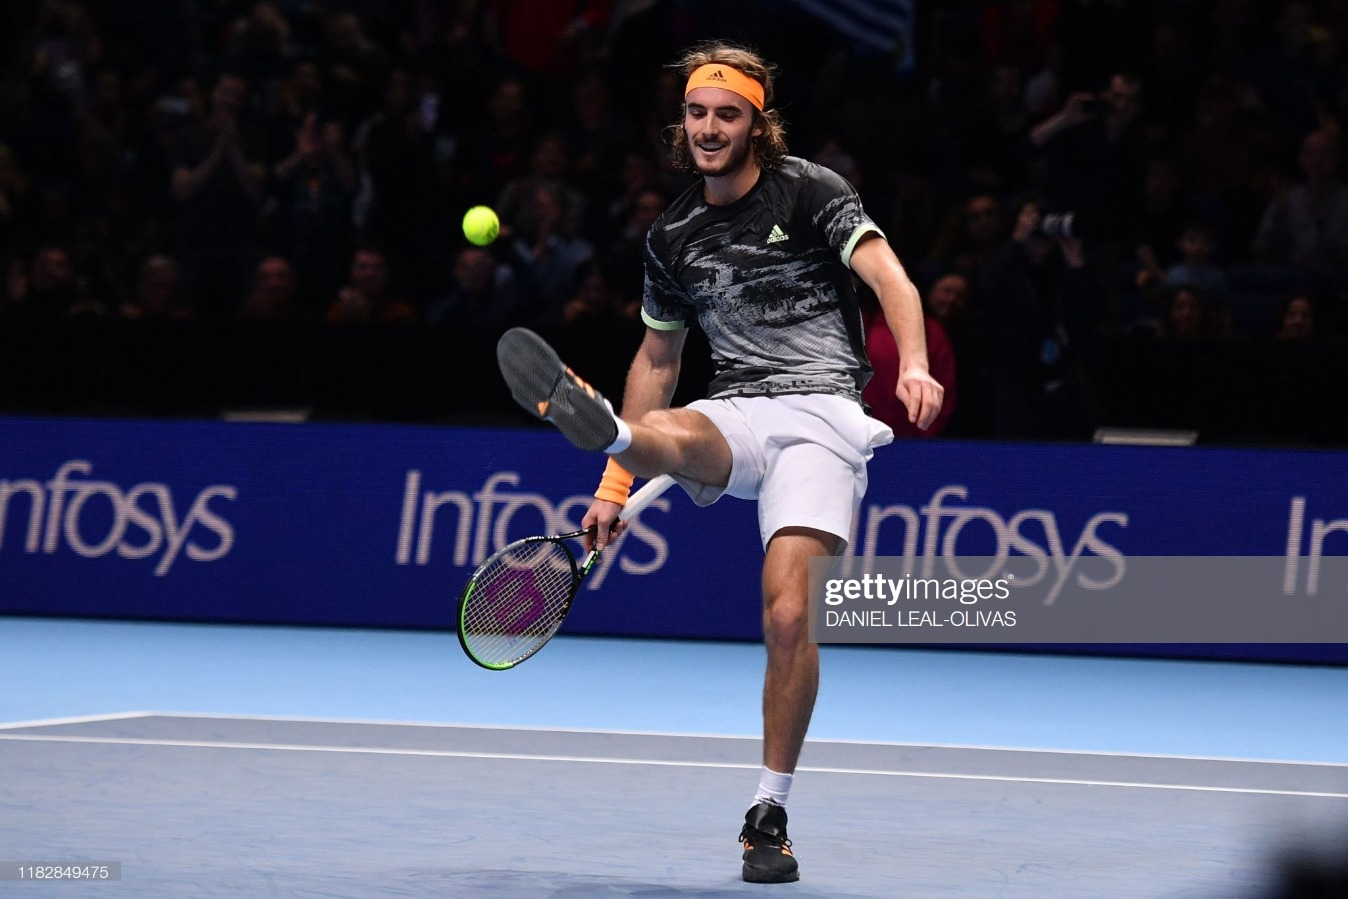 TOPSHOT-TENNIS-GBR-ATP-FINALS : News Photo